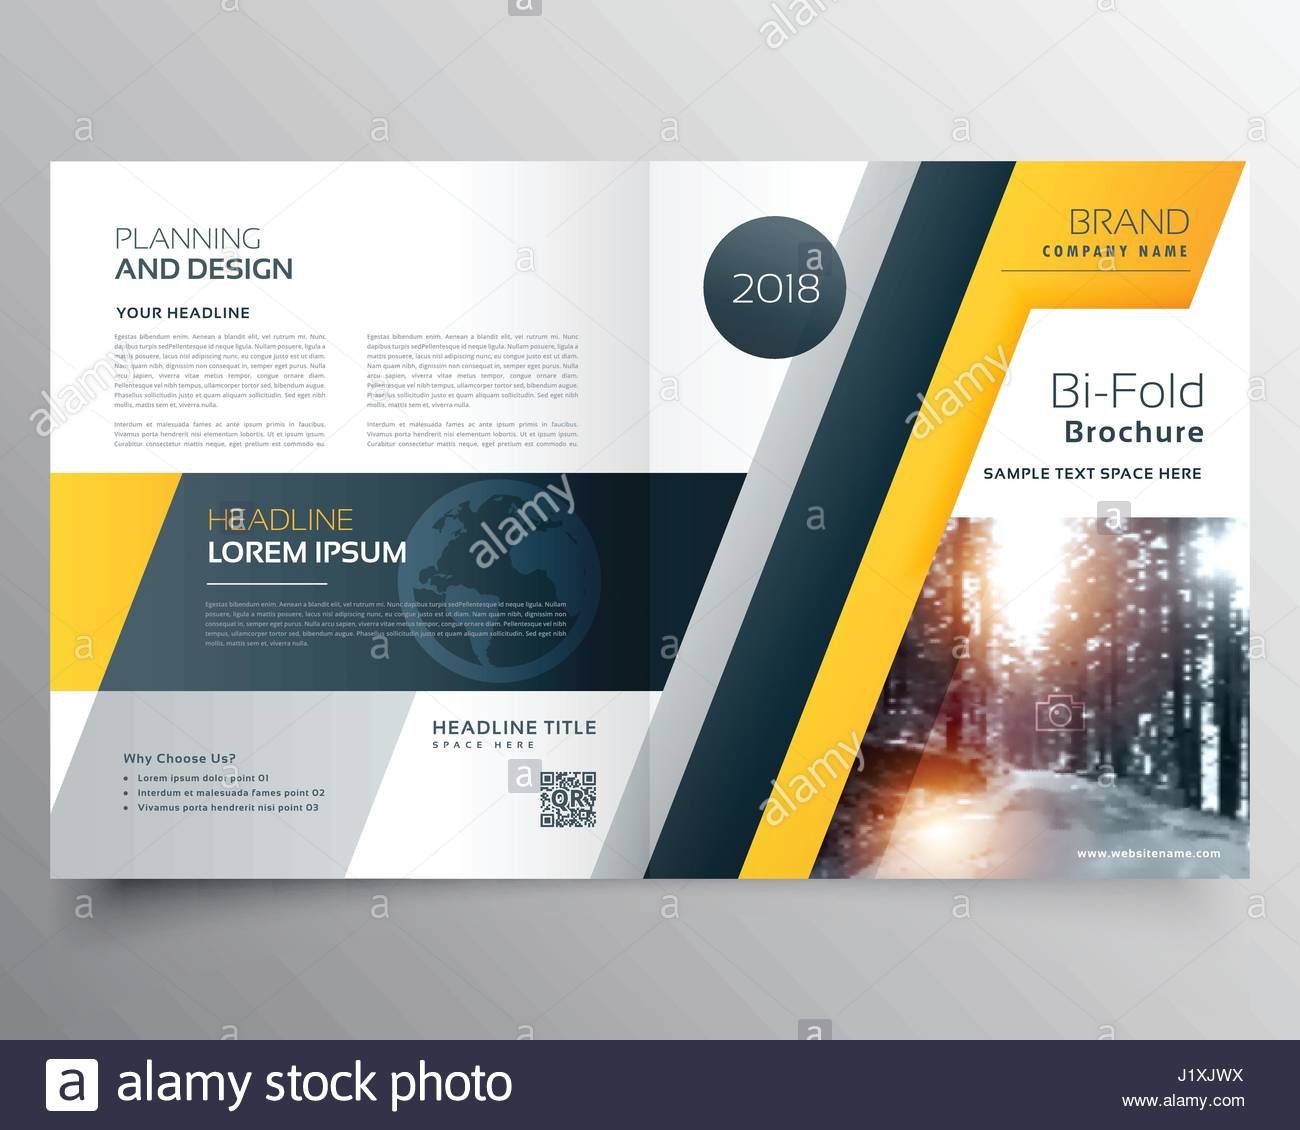 Company Business Cover Page Bifold Stock Photos \u0026 Company Business .